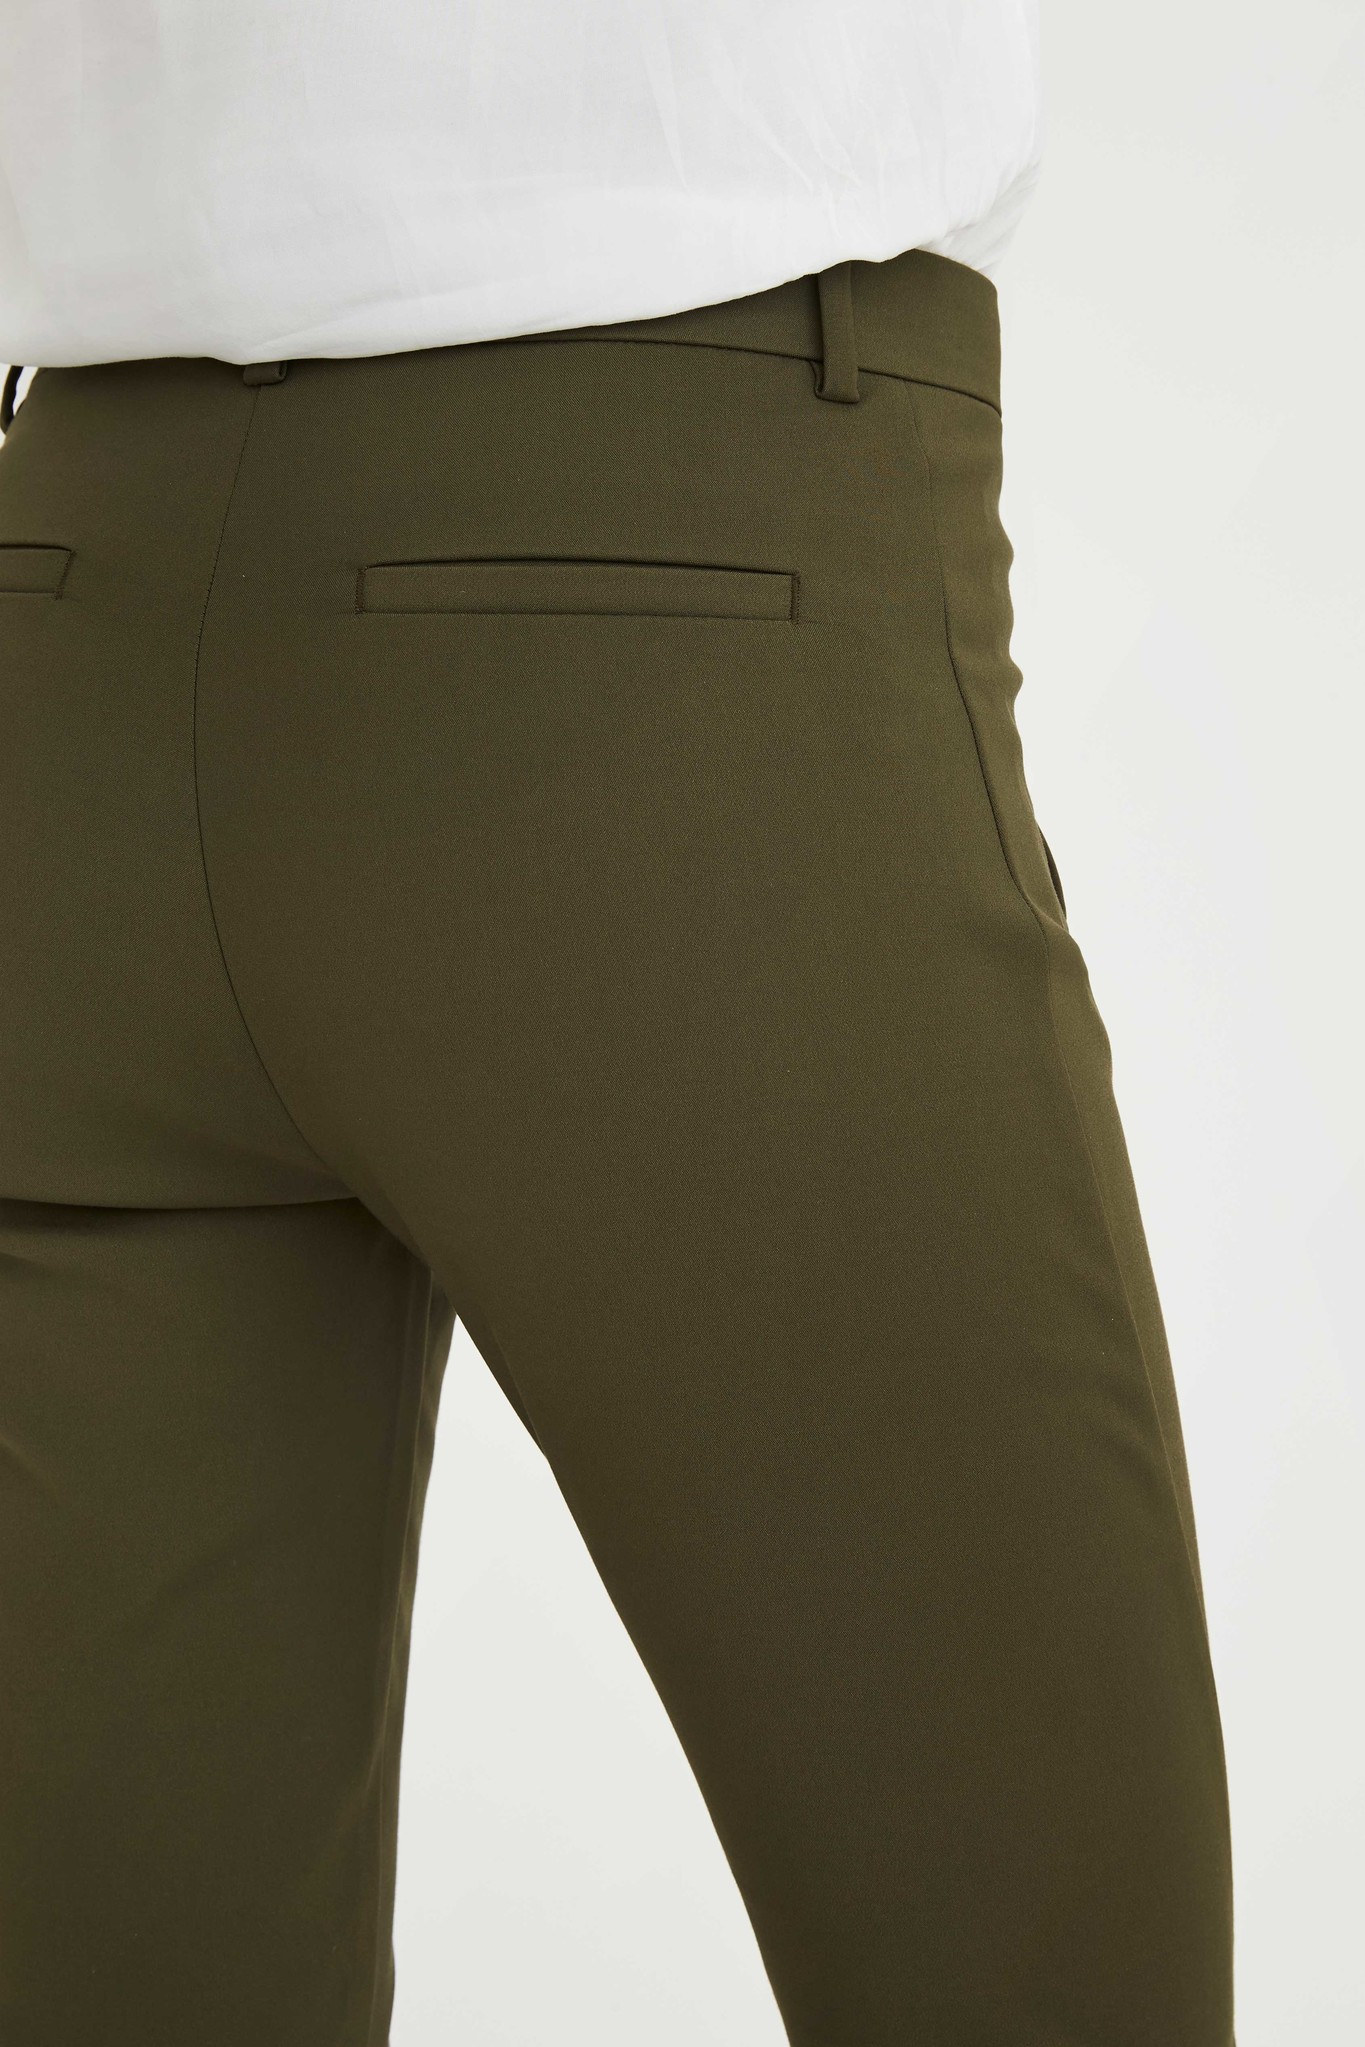 Angelie Pants - Army Jeggin-4